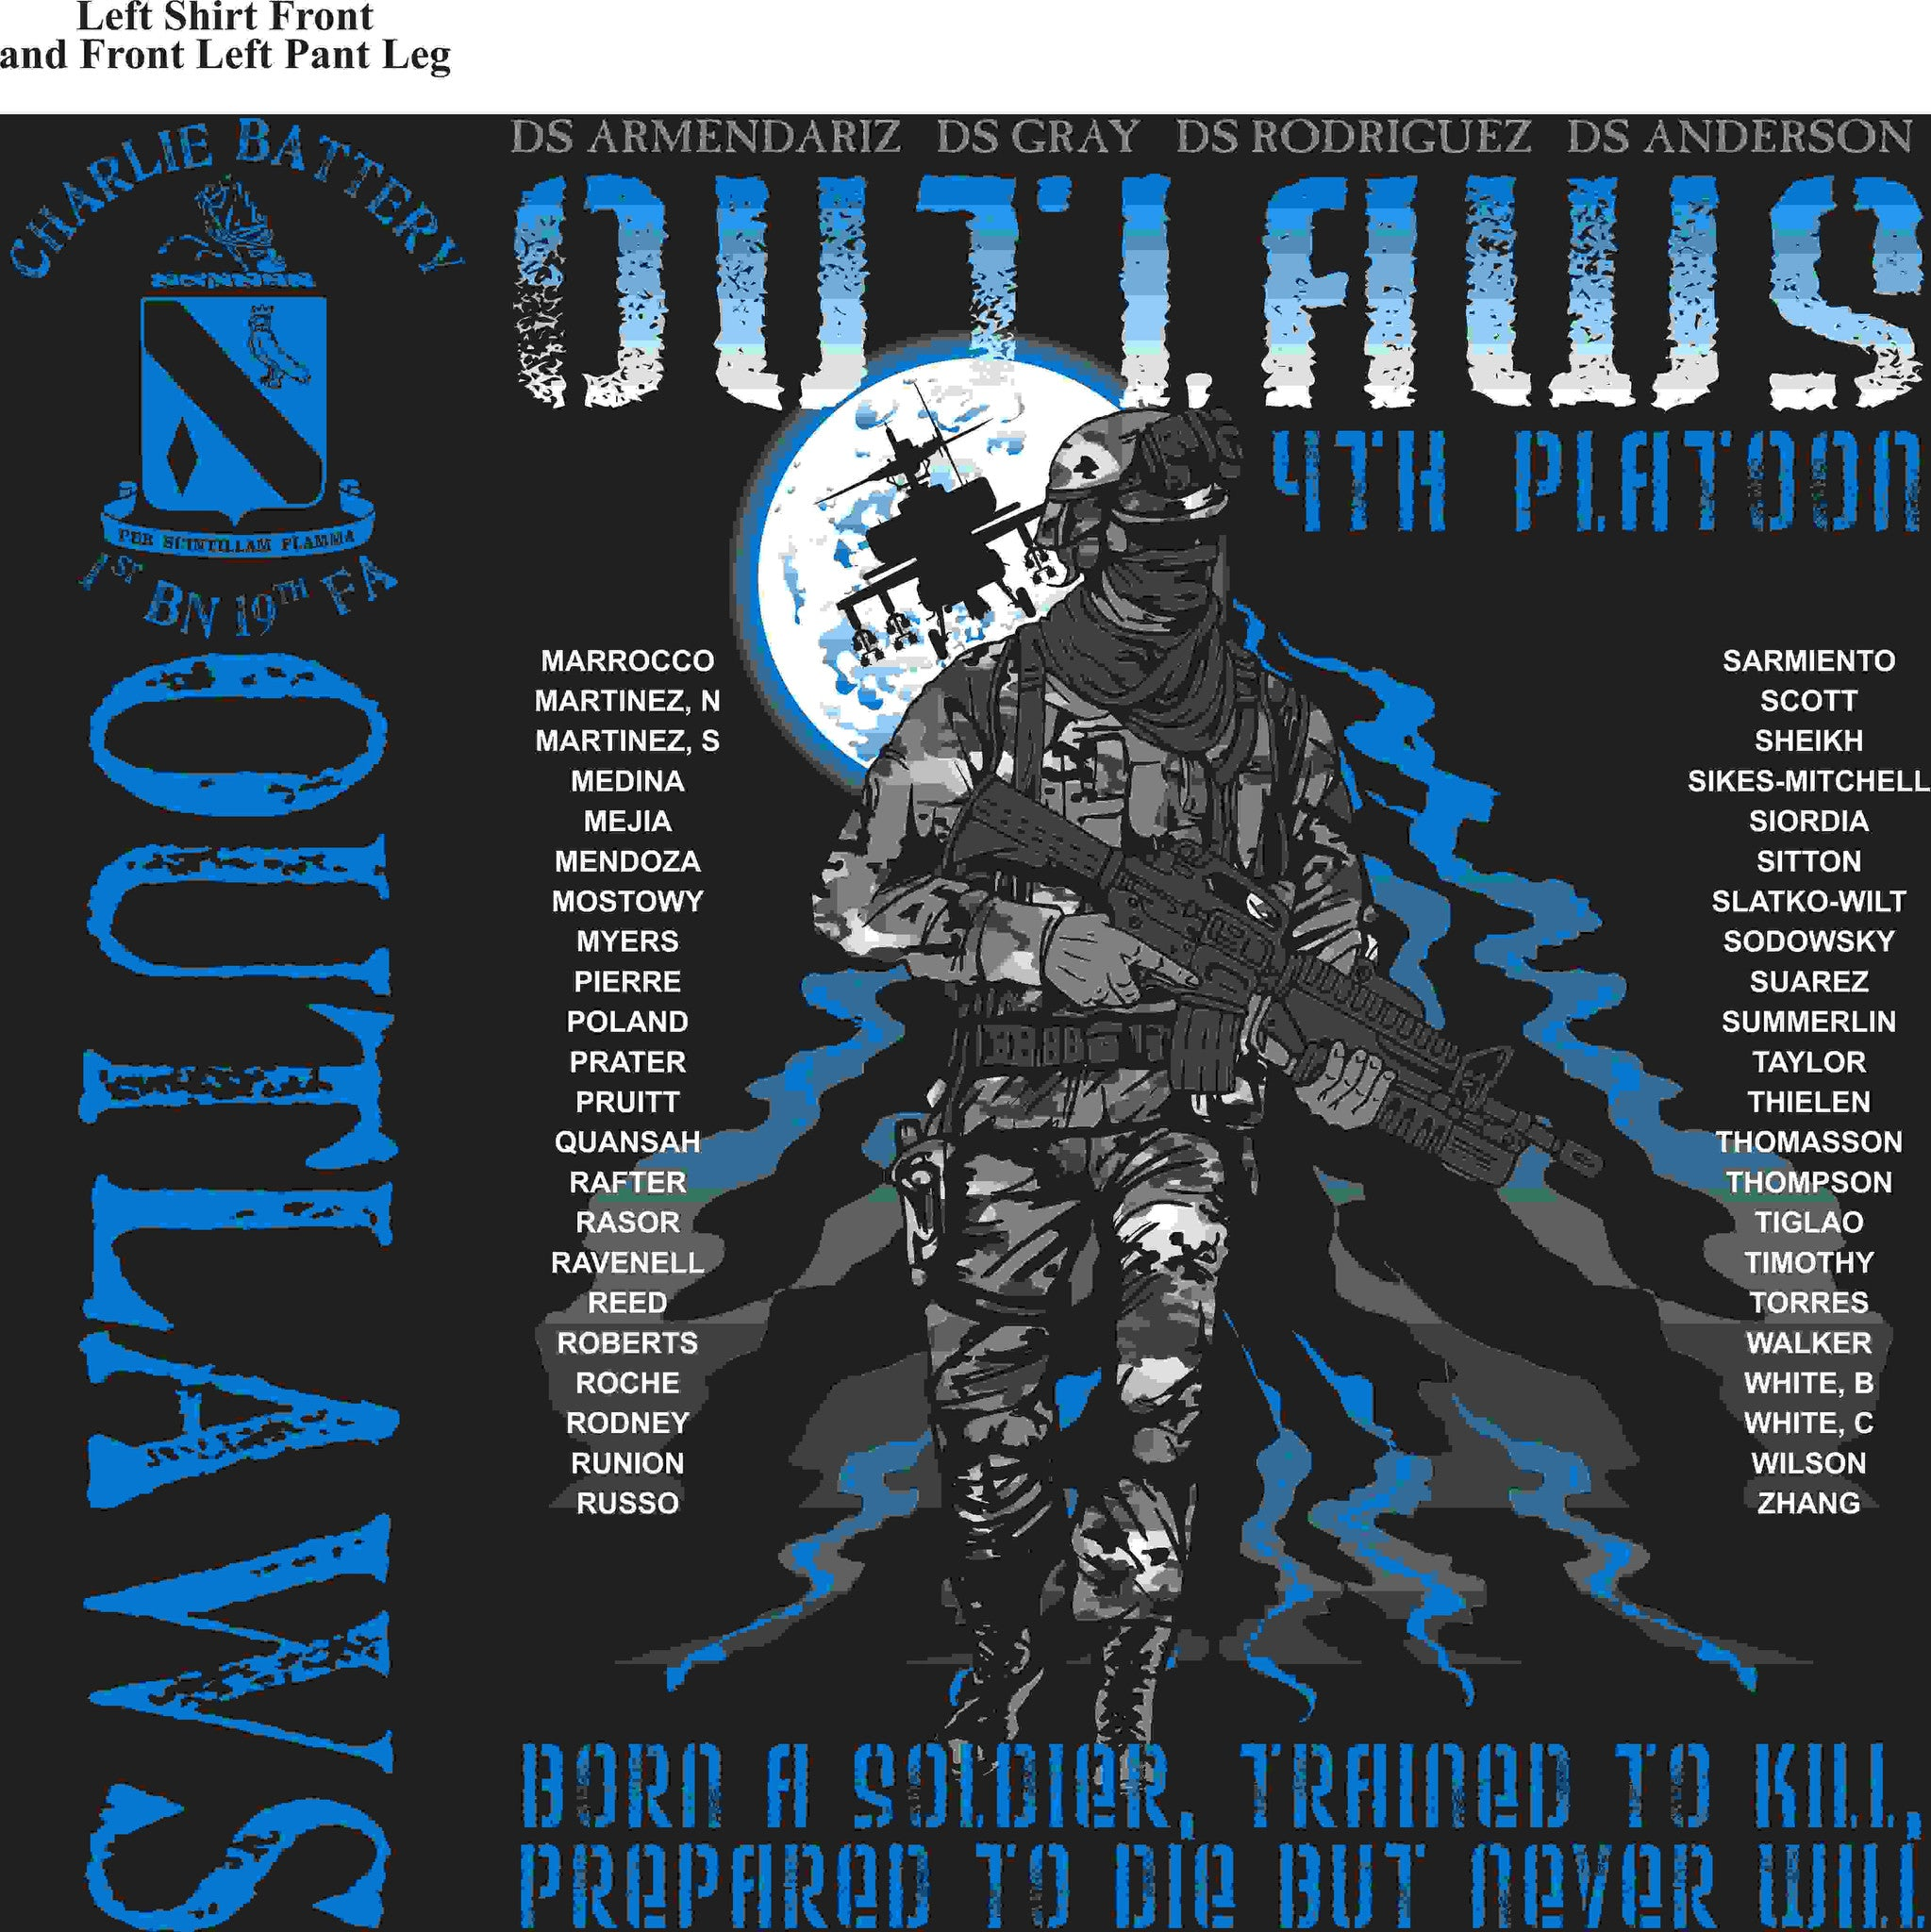 PLATOON SHIRTS (2nd generation print) CHARLIE 1st 19TH OUTLAWS MAY 2016